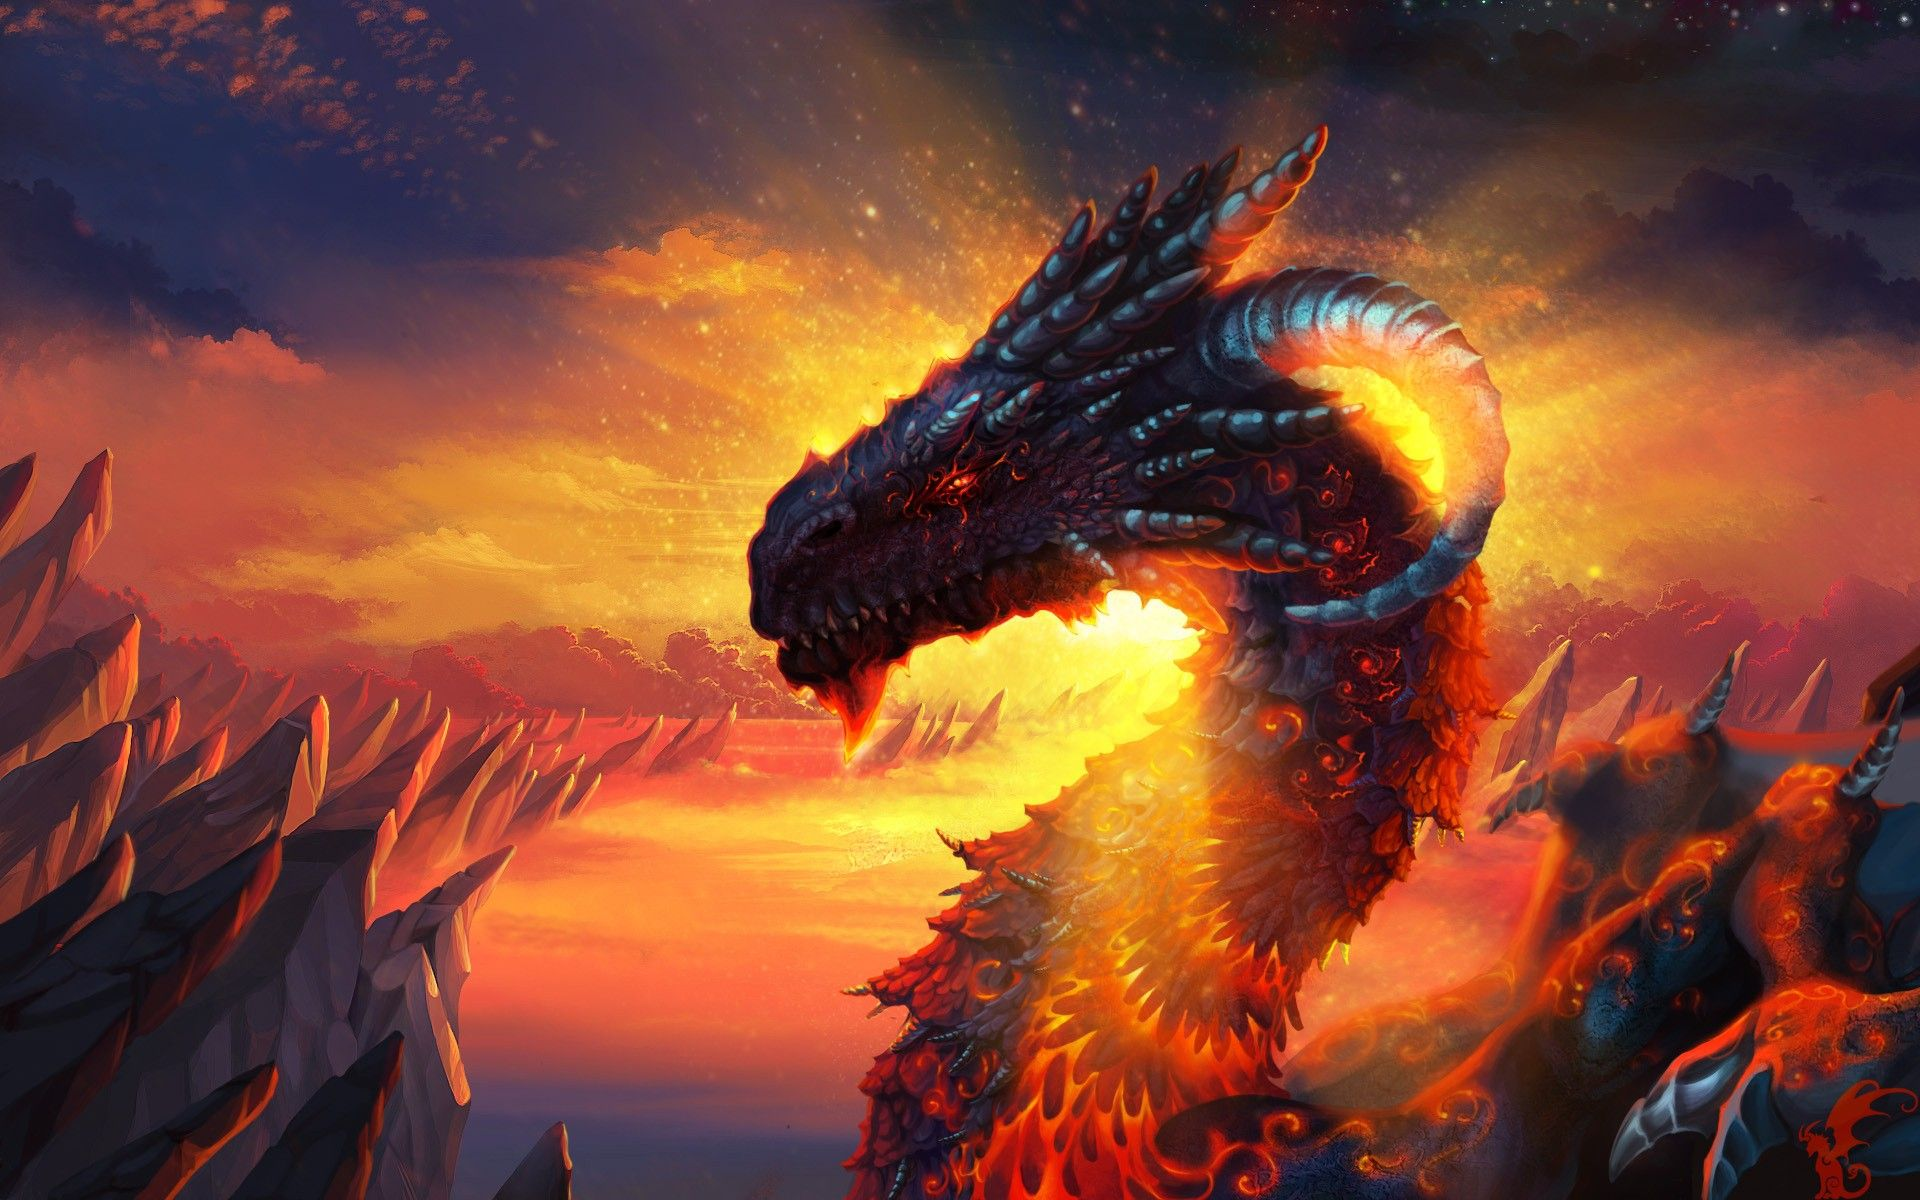 epic fantasy wallpapers high resolution | amazing wallpapers